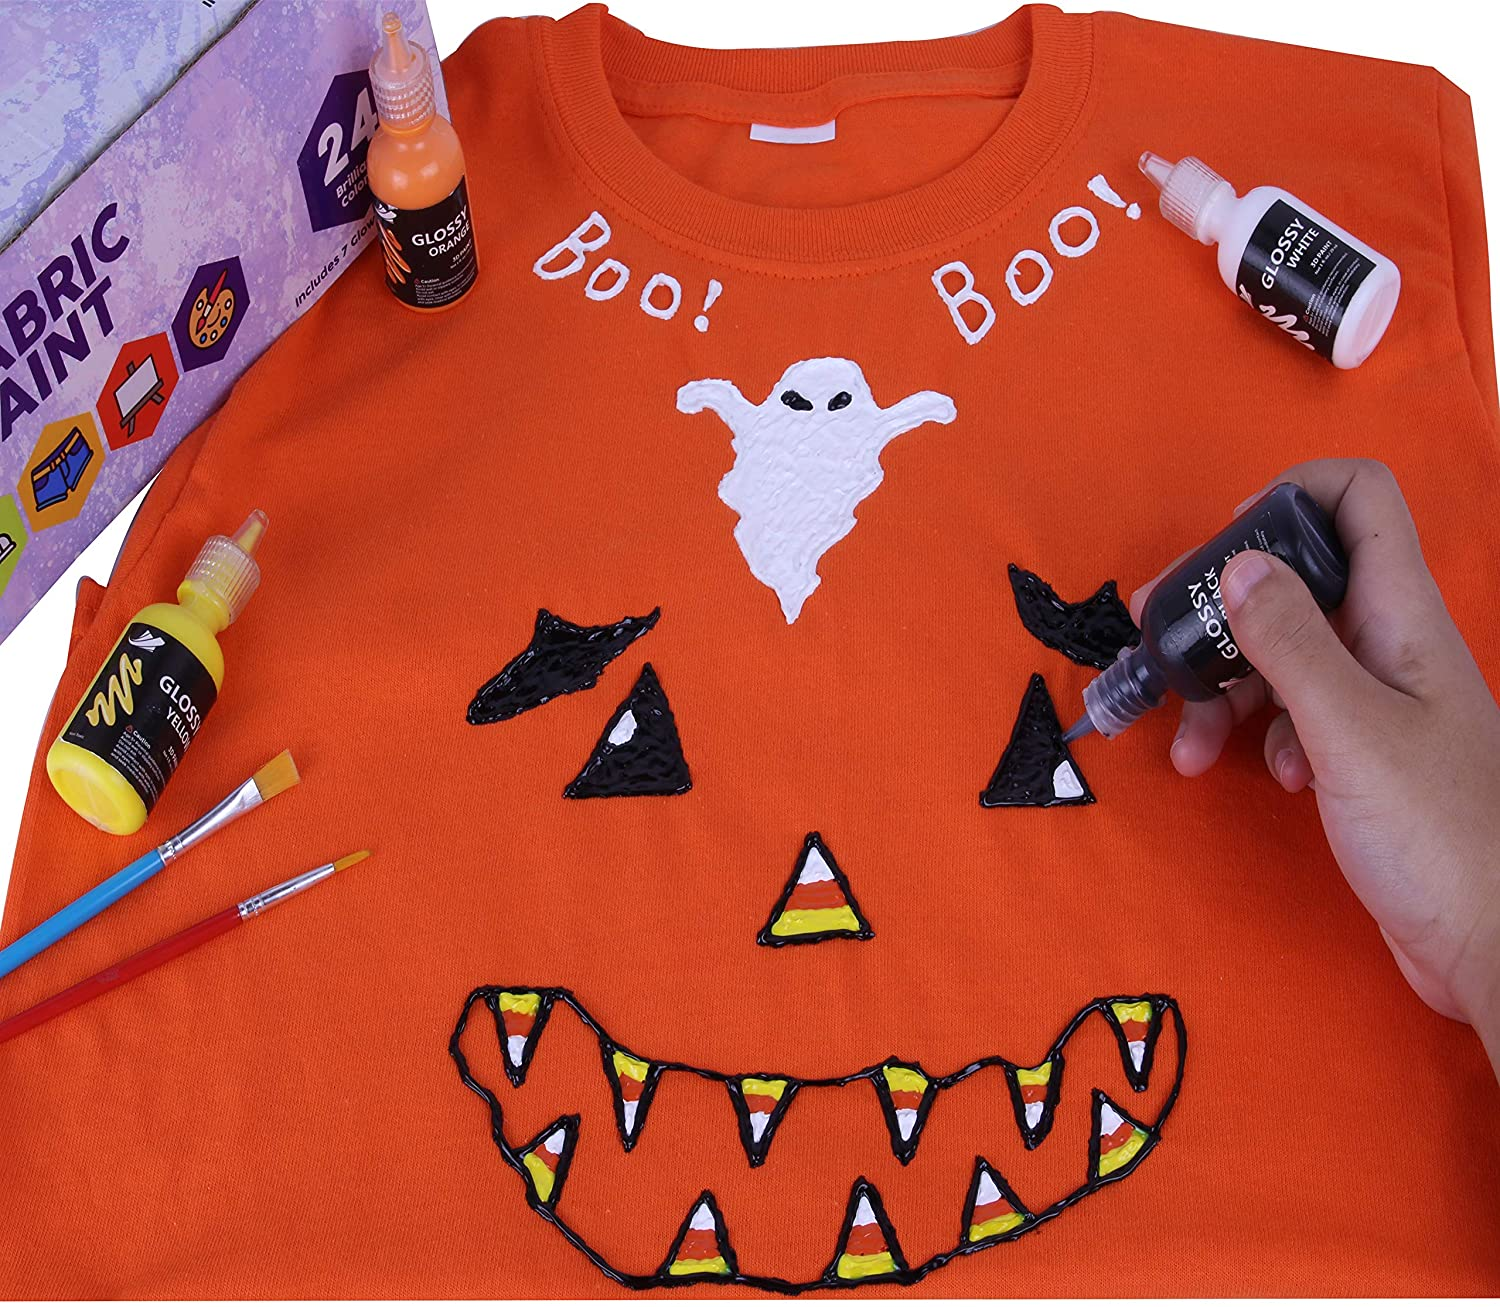 cc170bb93 How To Decorate T Shirts With Fabric Paint - DREAMWORKS